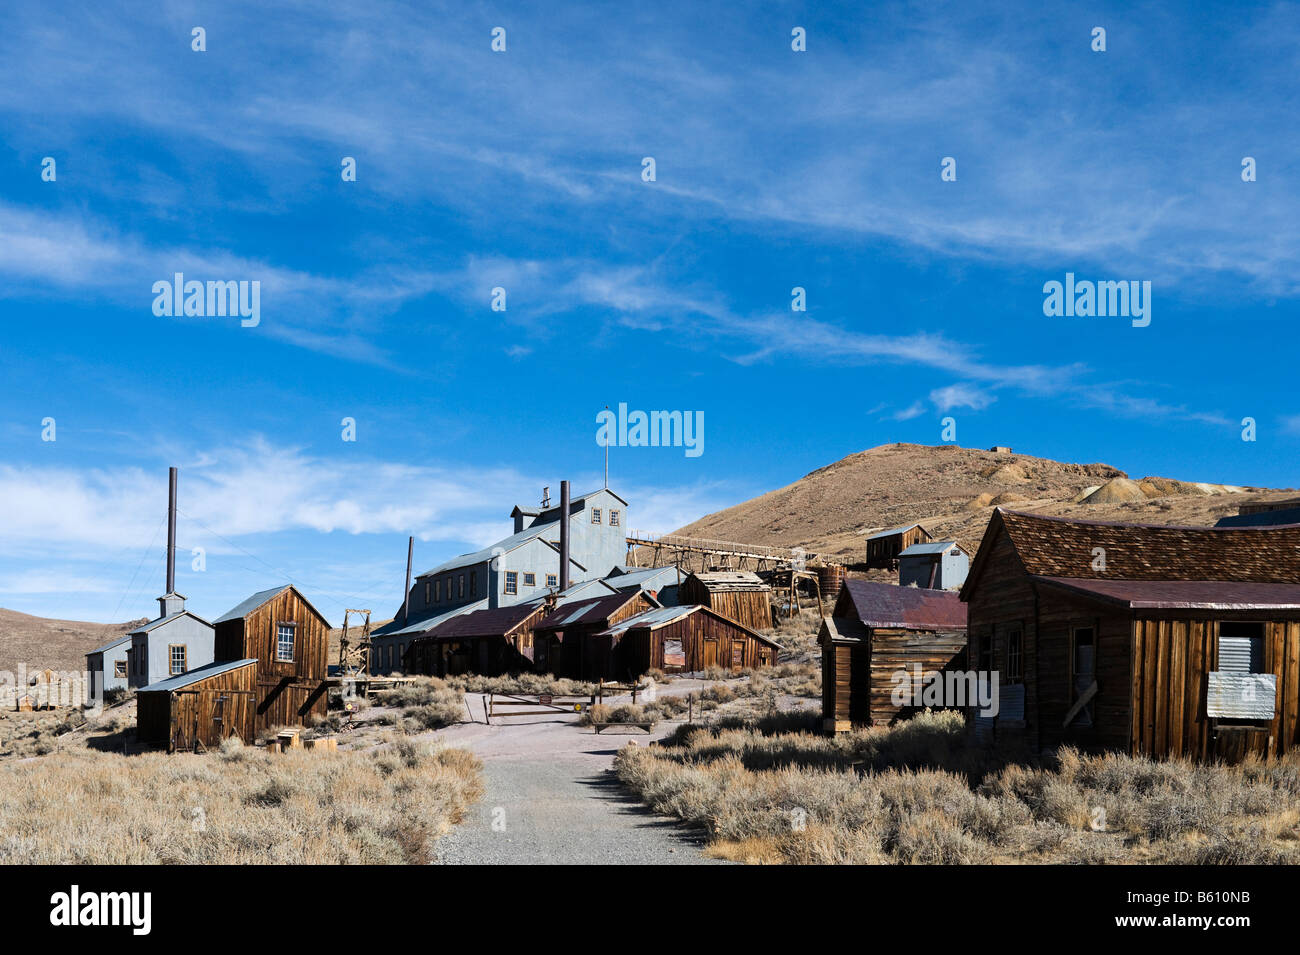 The Standard Mill and Mine in the 19thC ghost town of Bodie, near Bridgeport, Sierra Nevada Mountains, California, - Stock Image